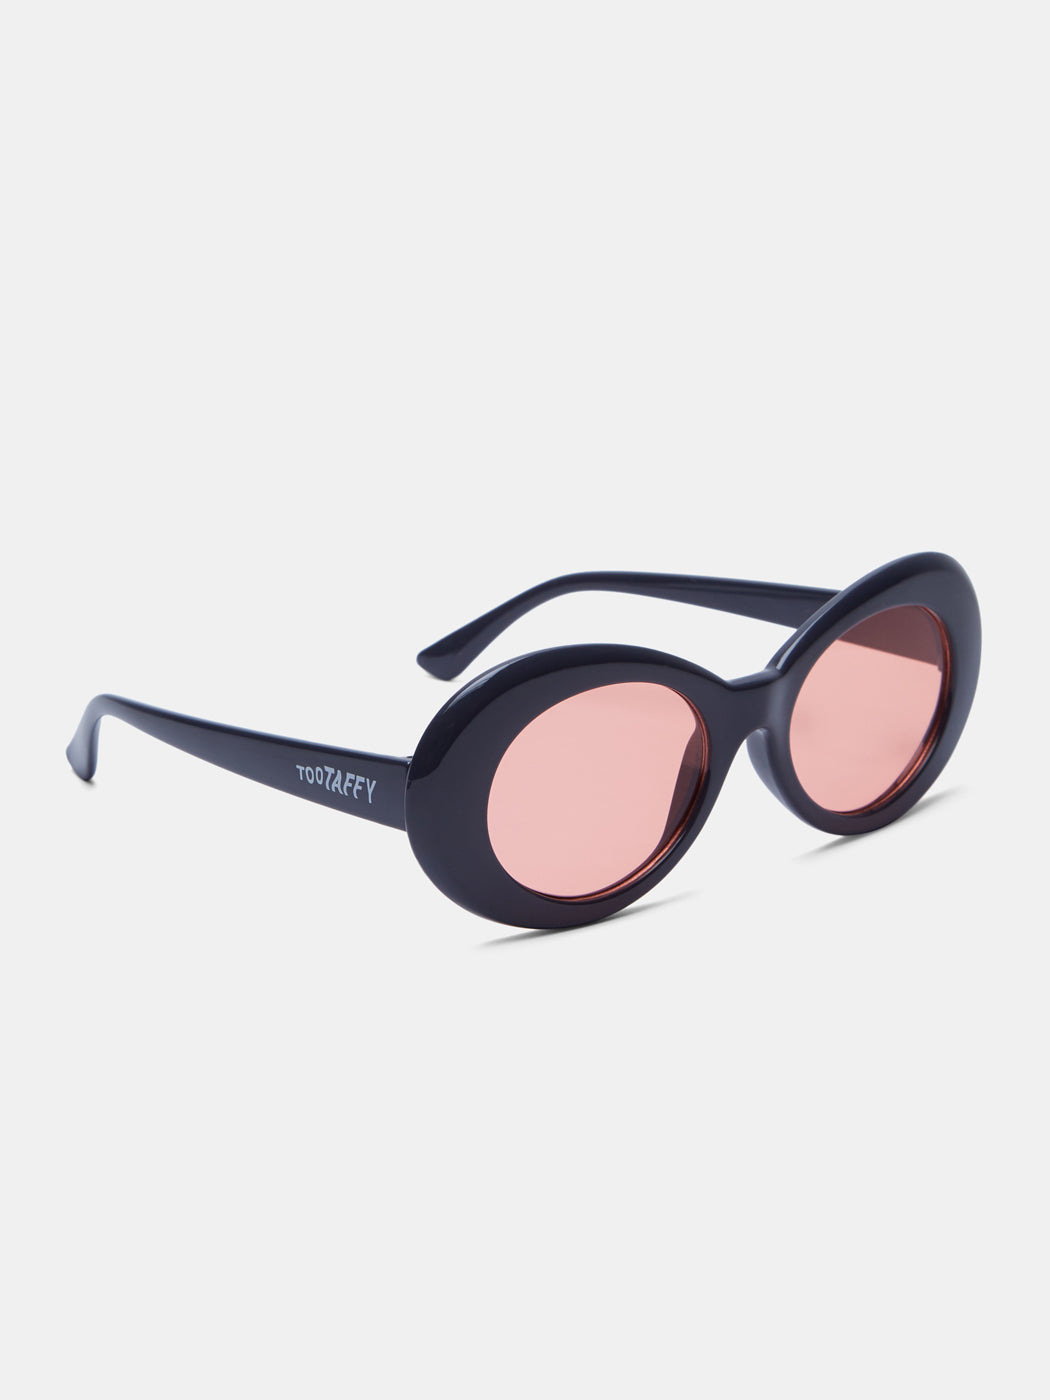 Alien Grey Sunglasses